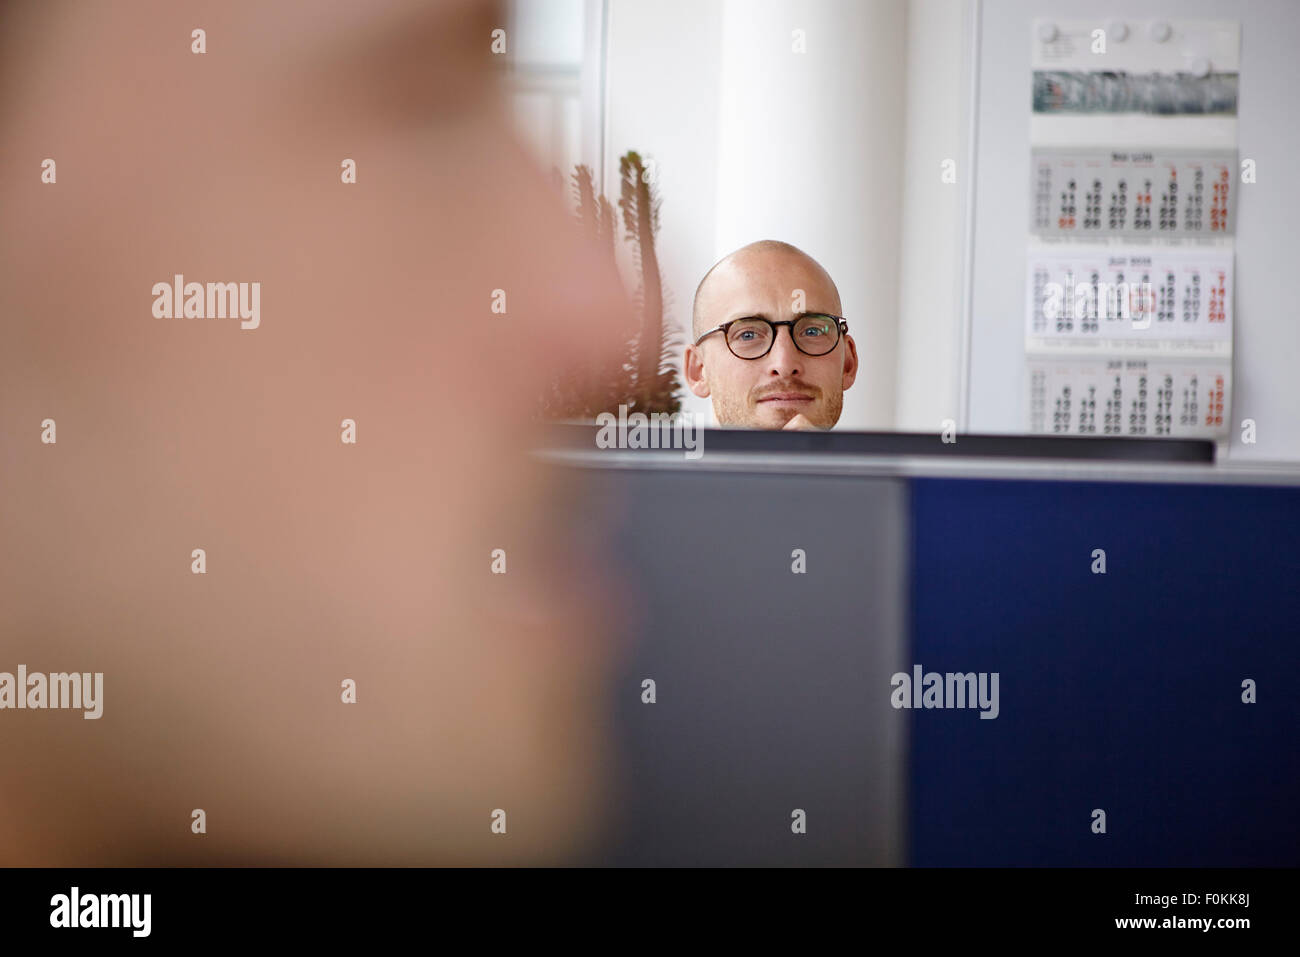 Confident man in office behind computer screens - Stock Image